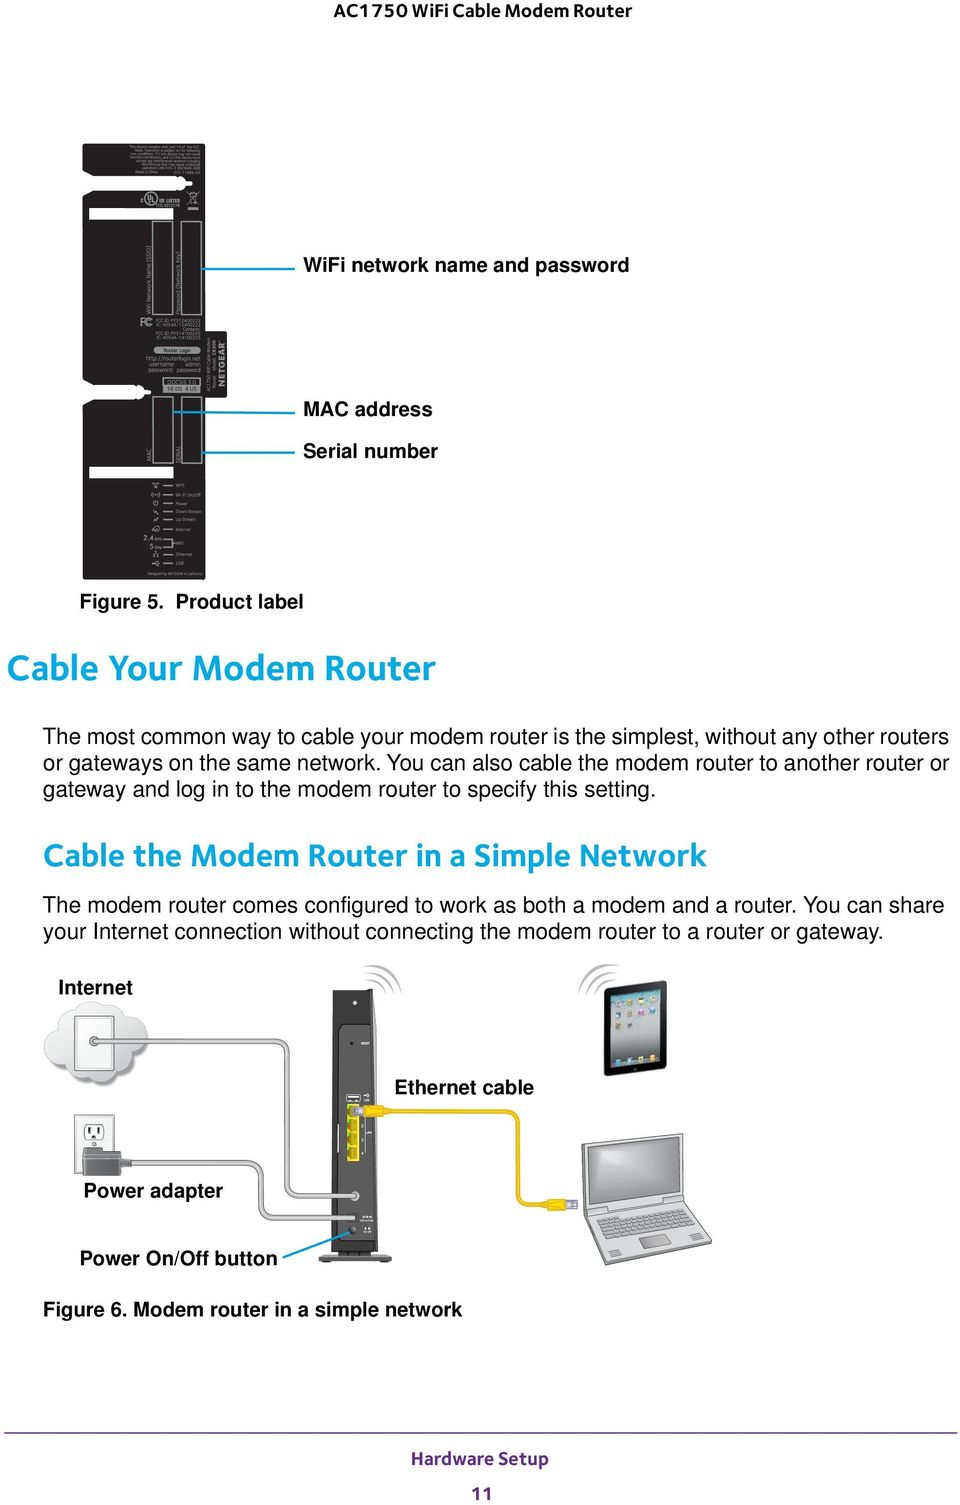 cable the modem router to another router or gateway and log in to the modem router to specify this setting.